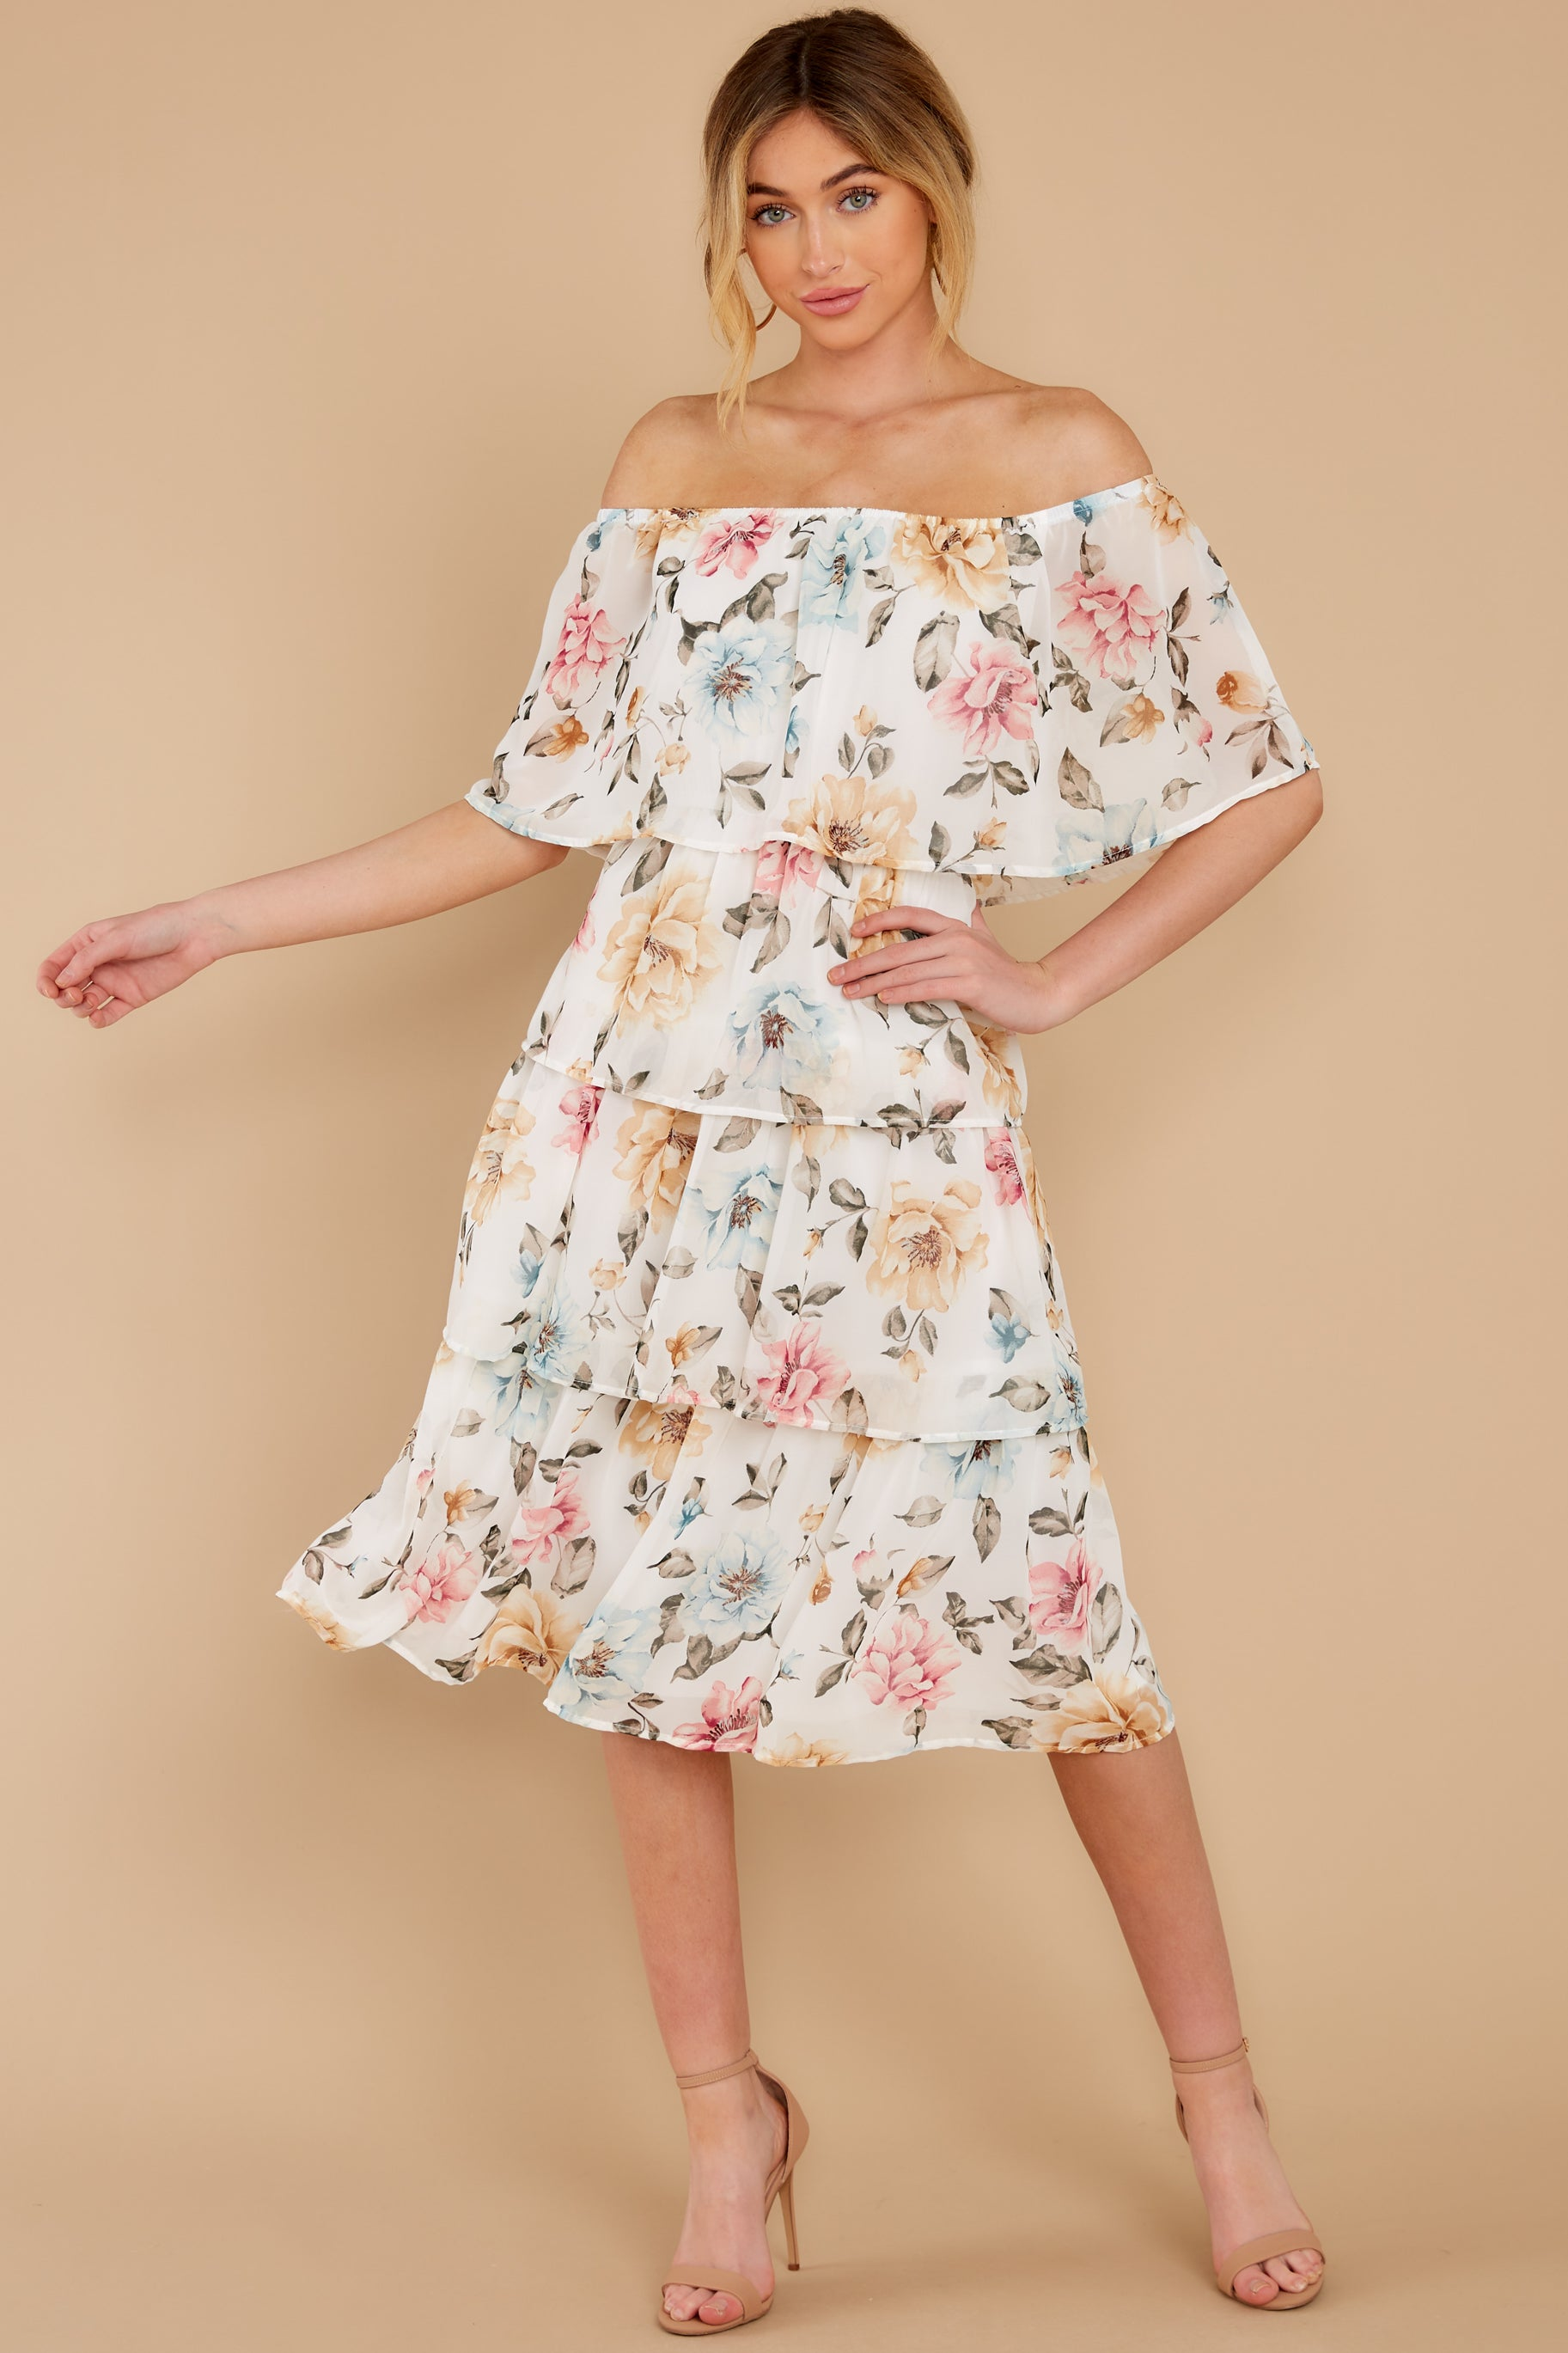 2 In My Dreams Ivory Floral Print Midi Dress at reddress.com